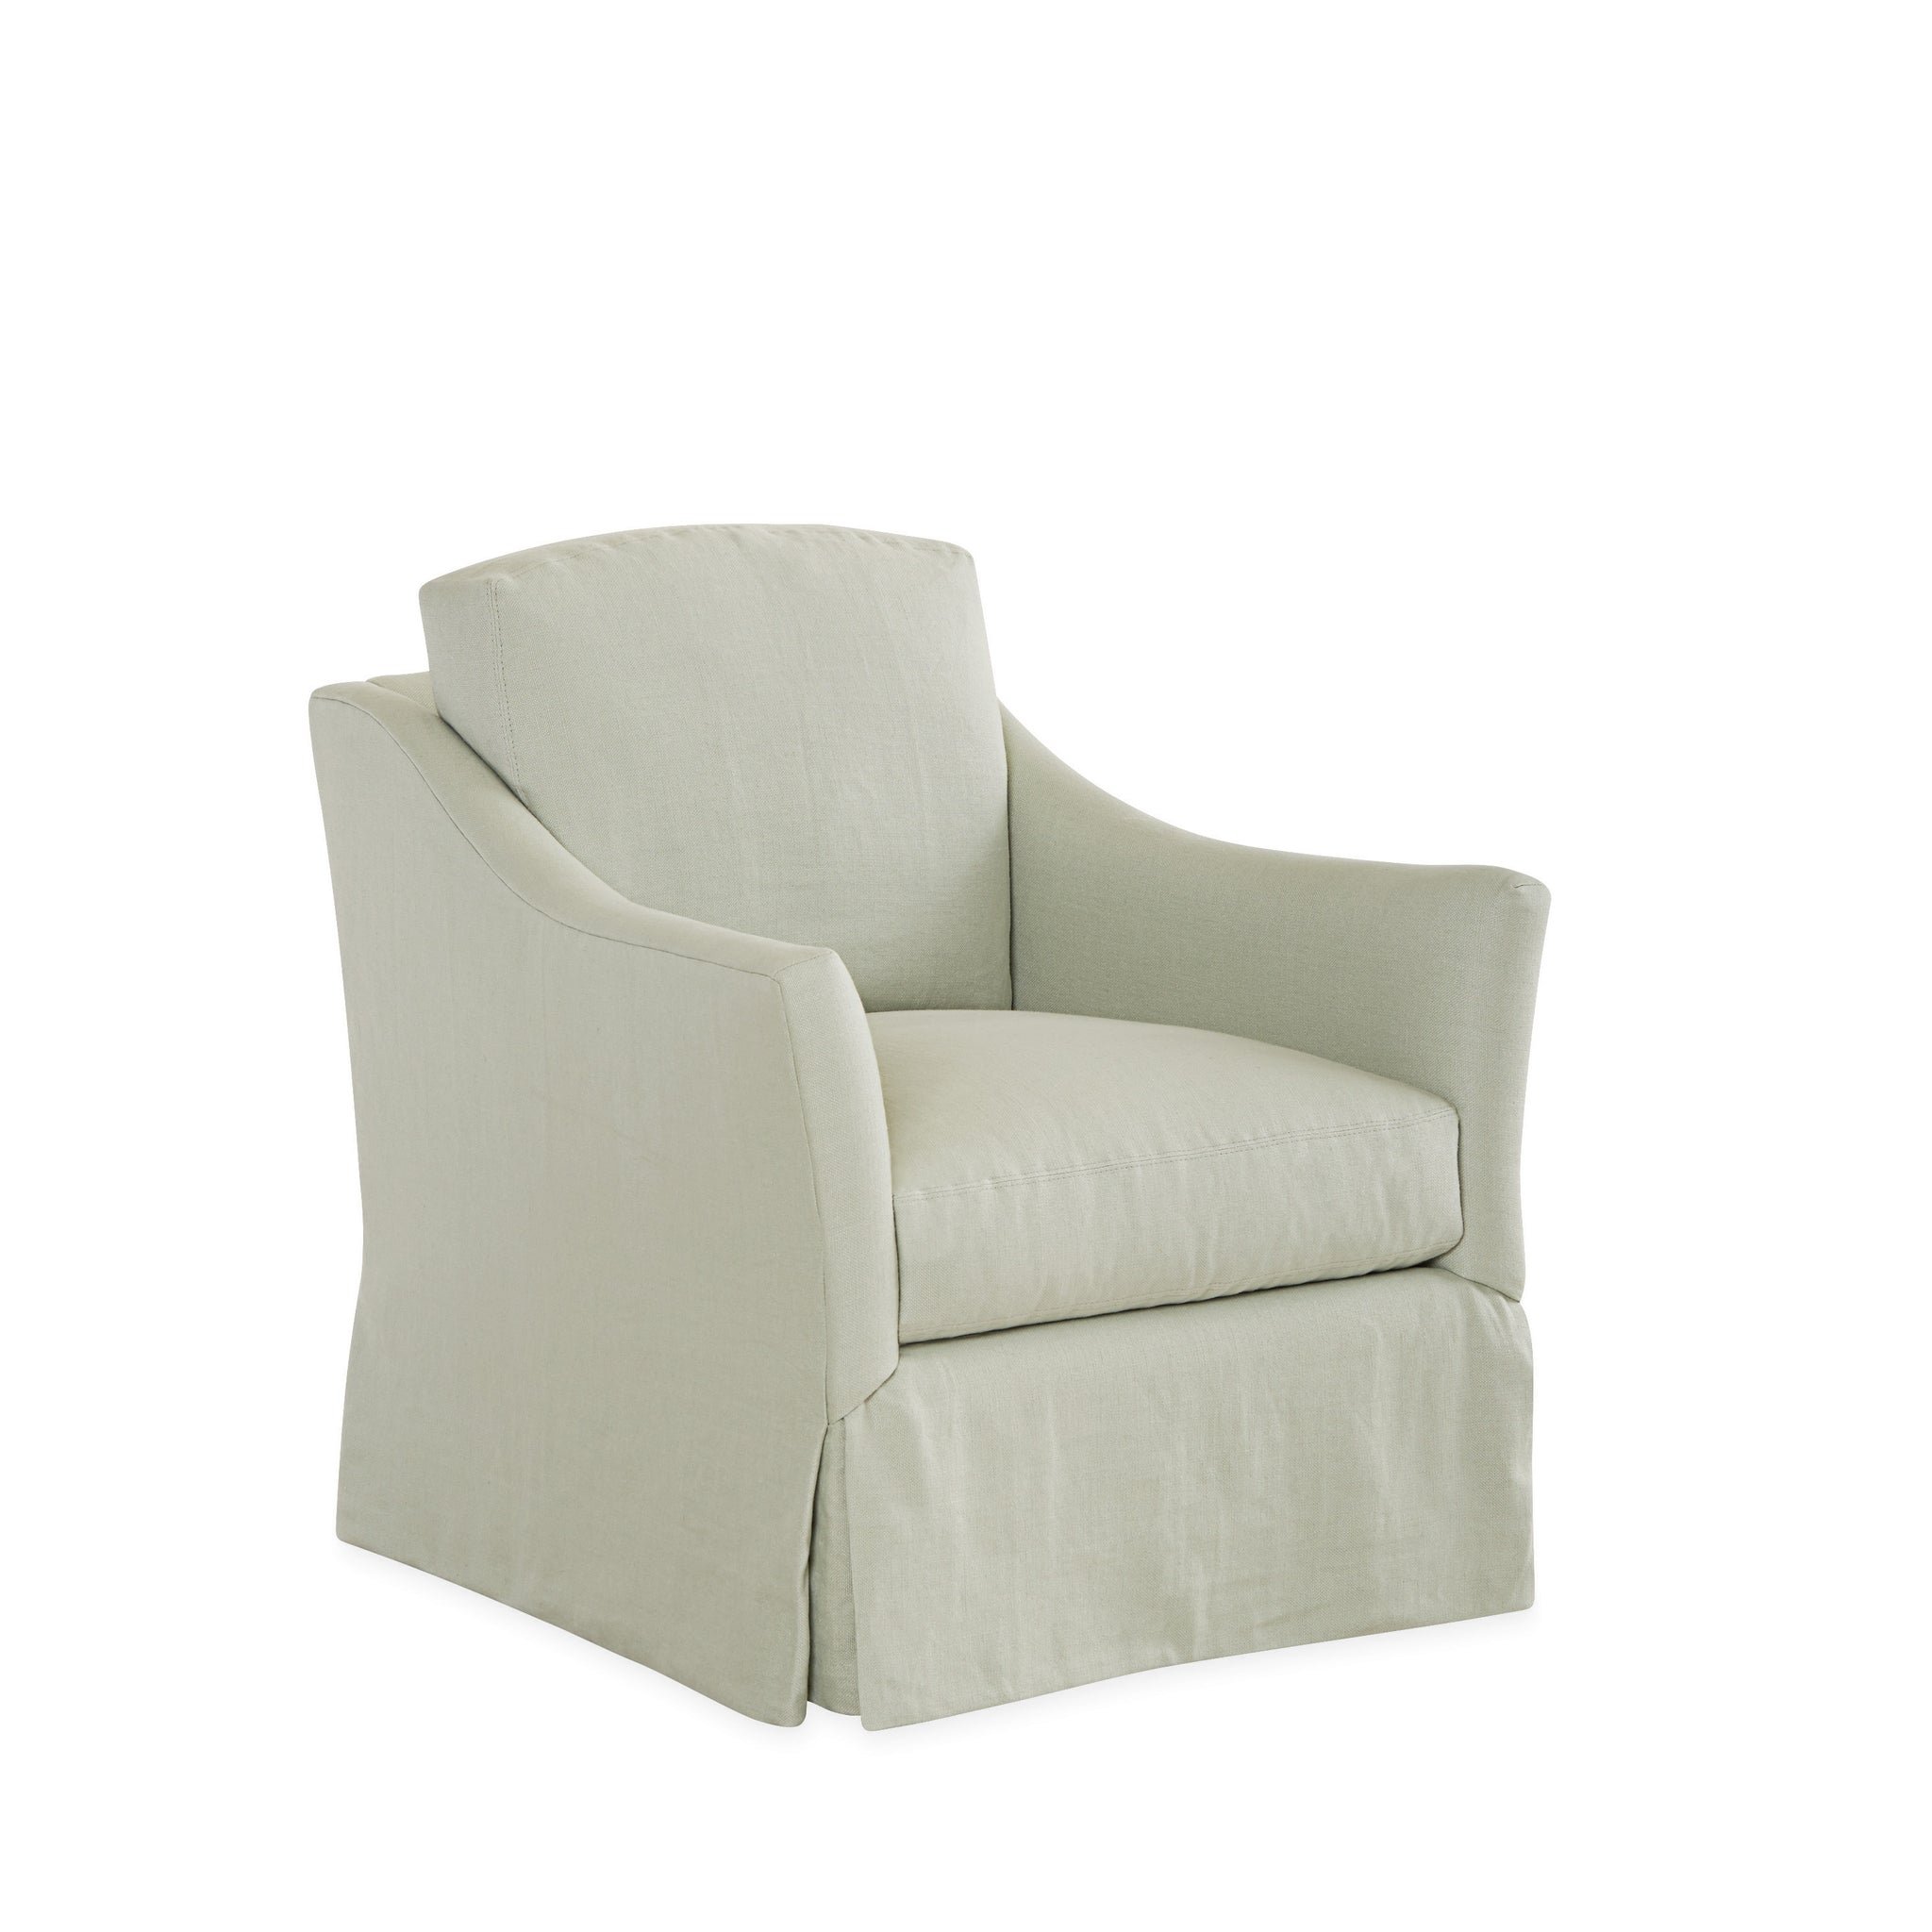 Remarkable Elise Swivel Chair Hawthorne House Bralicious Painted Fabric Chair Ideas Braliciousco